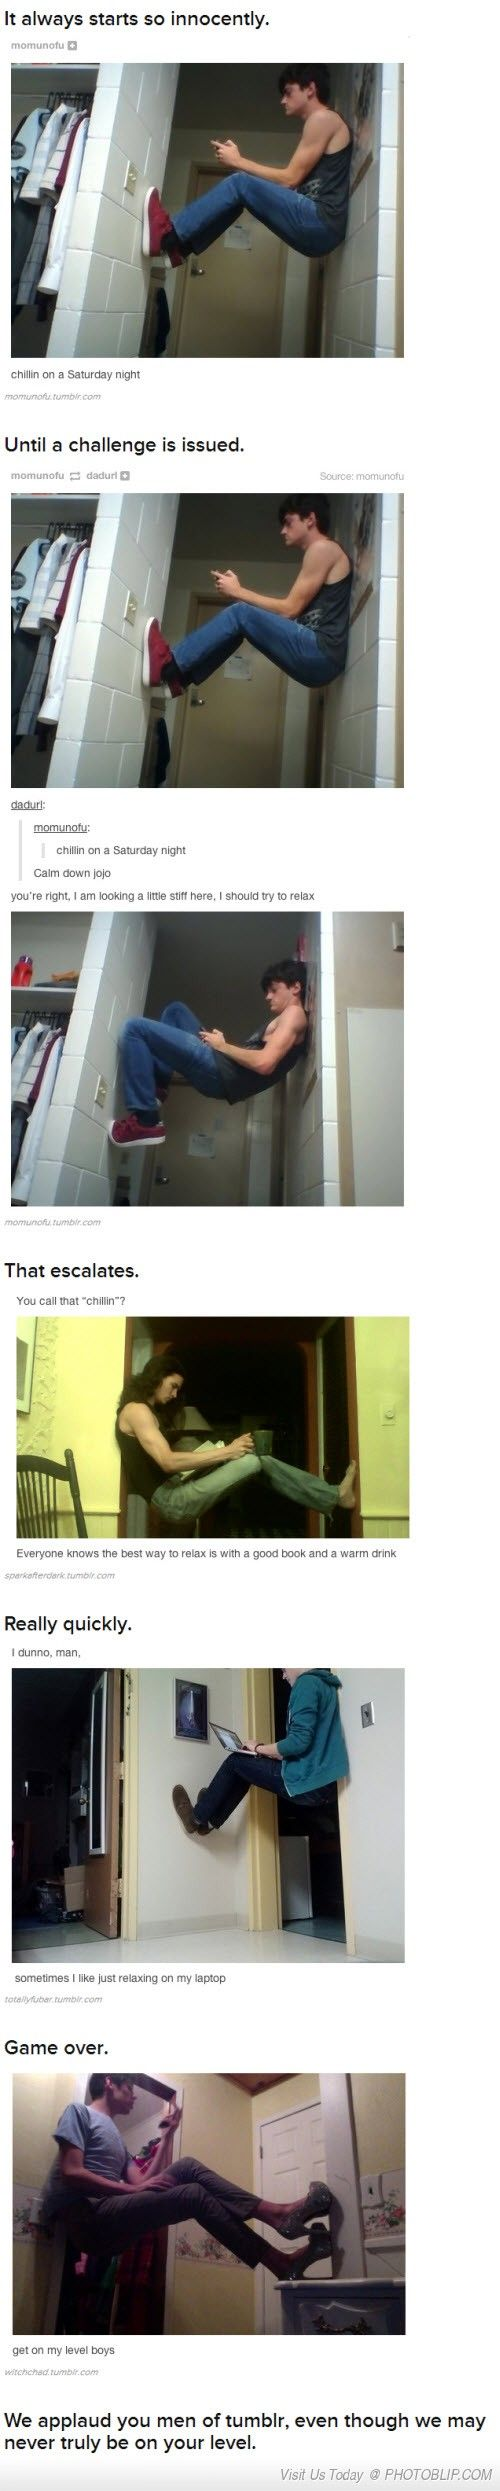 Just A Friendly Reminder That The Men Of Tumblr Are Awesome